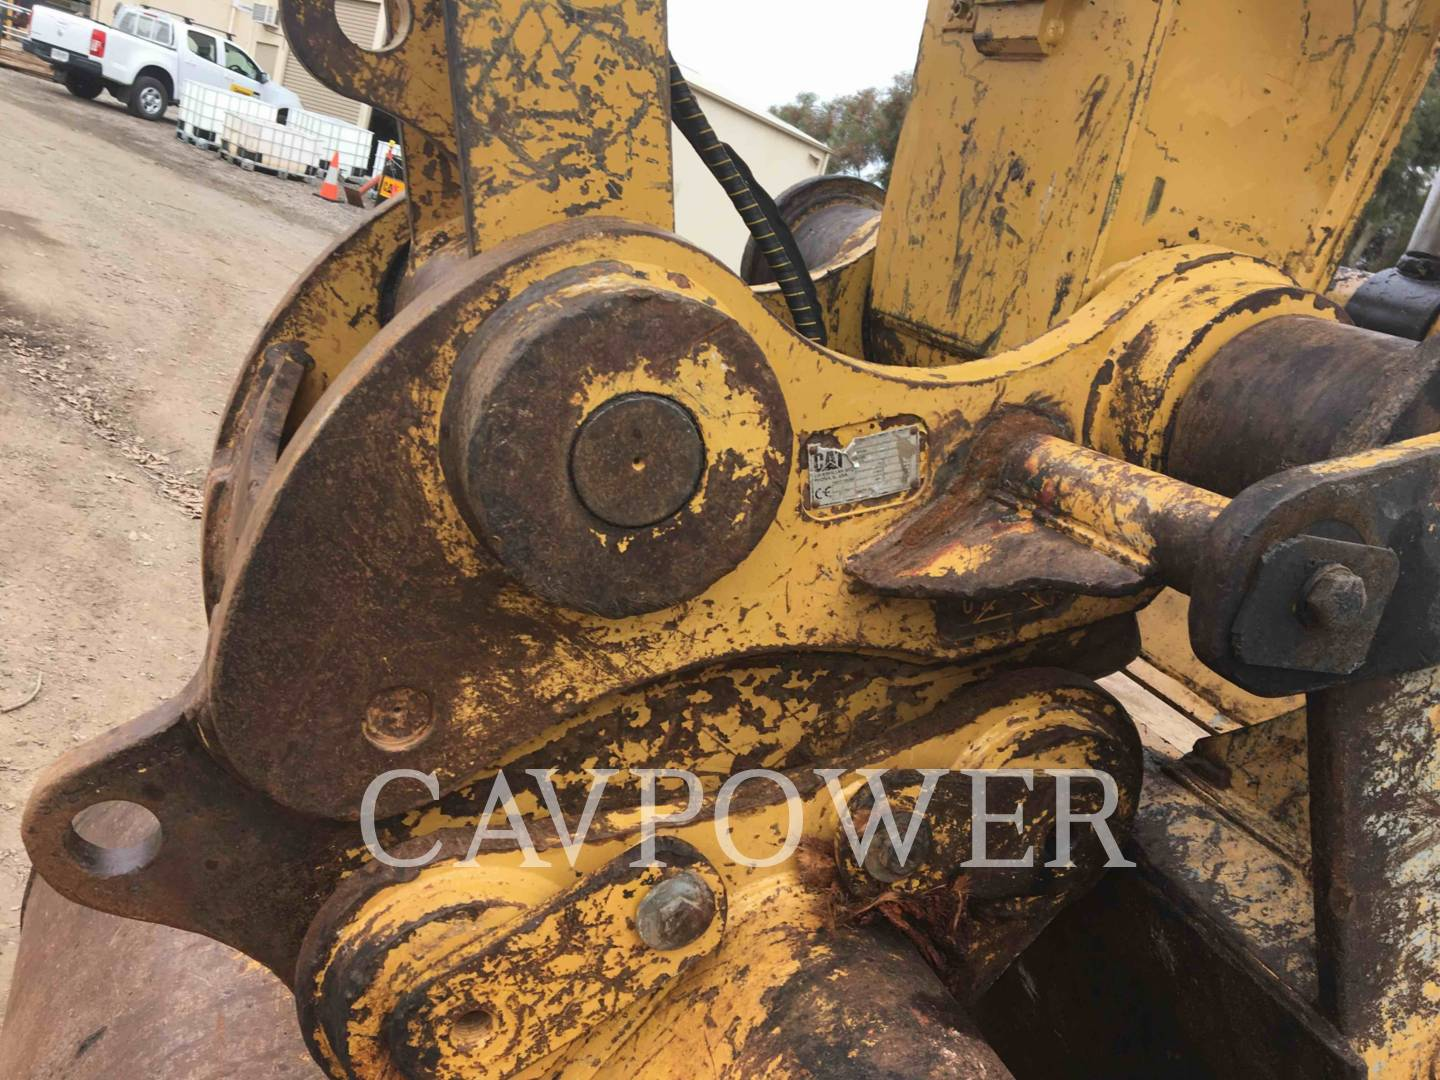 CATERPILLAR 329DL Page | Cavpower